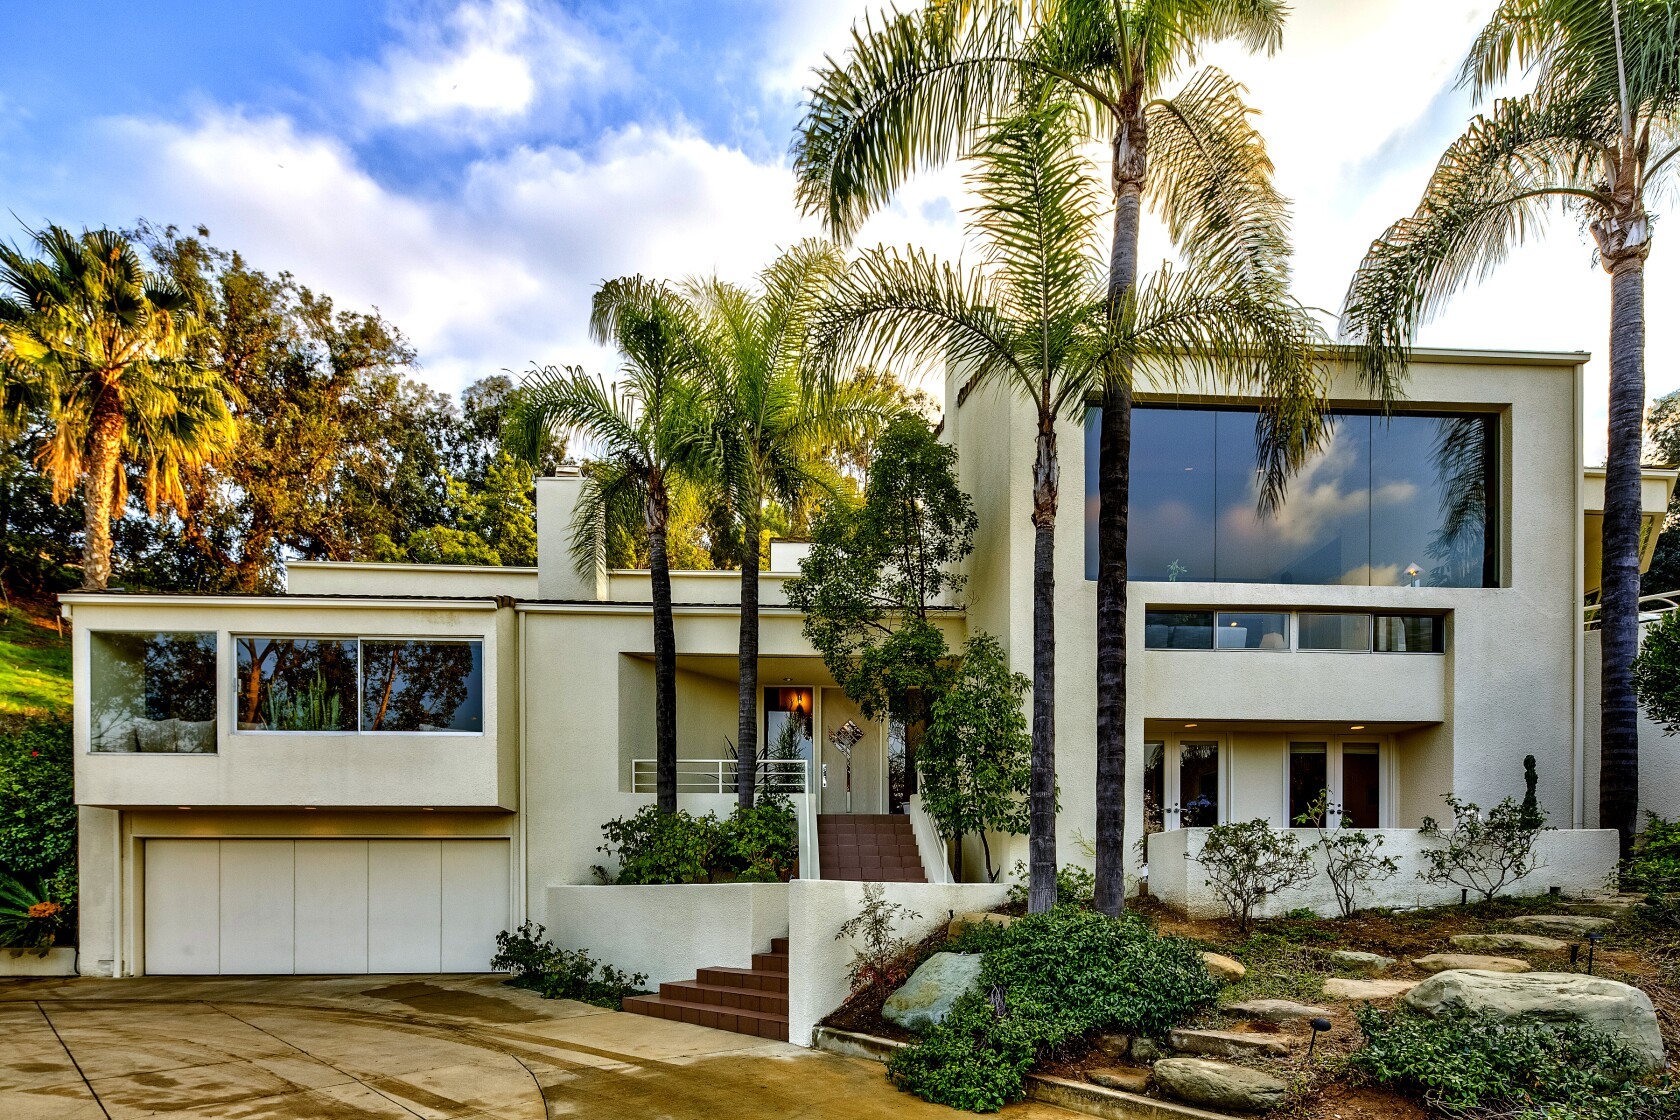 Home of the Week: King of the hill in Silver Lake